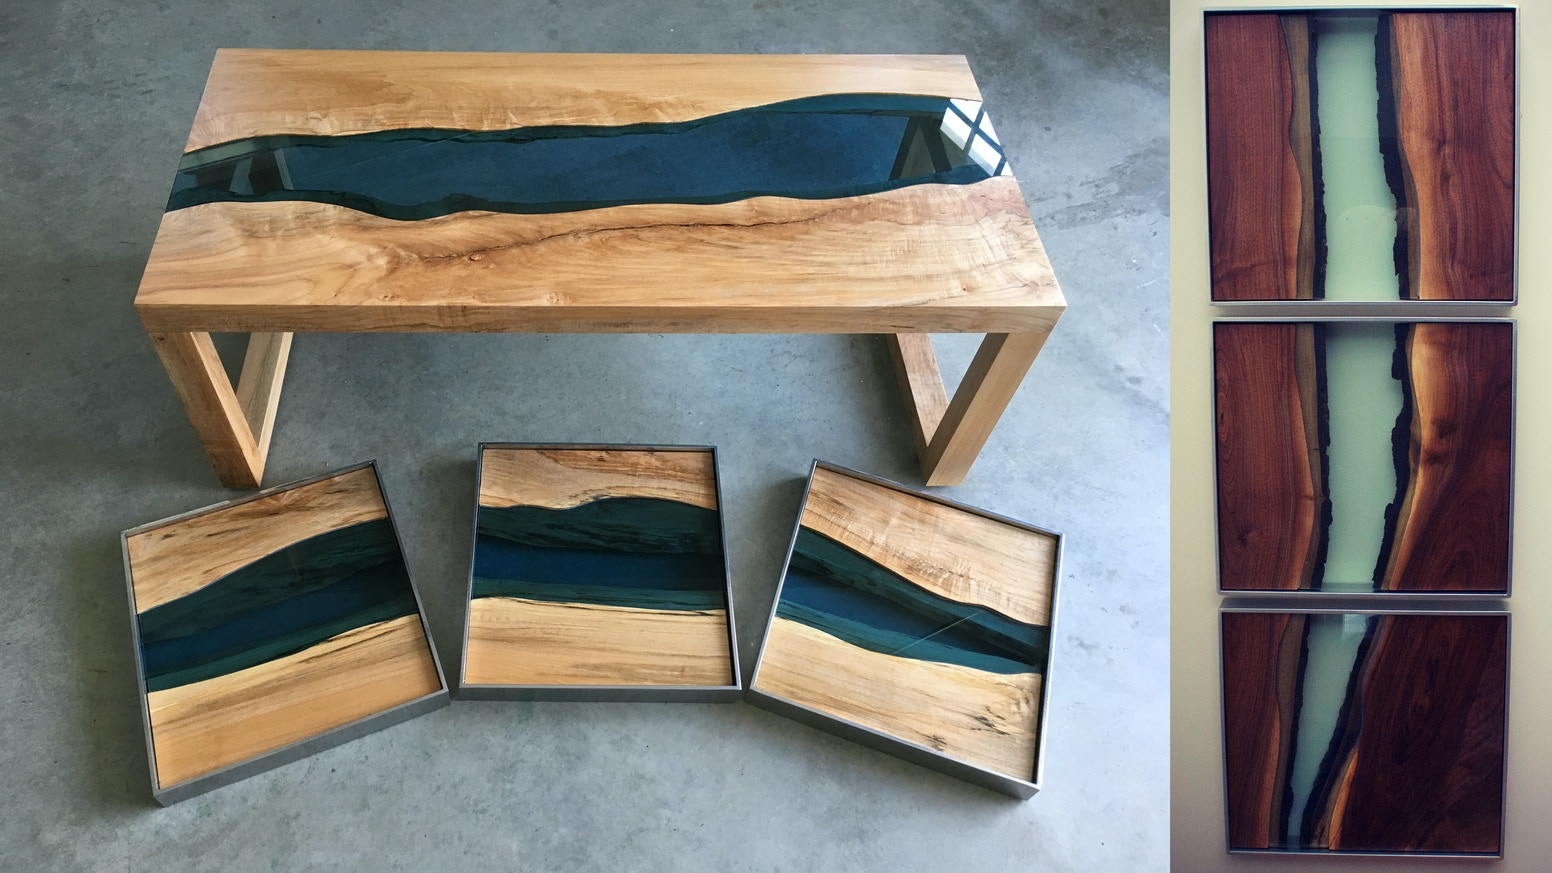 Limited Edition Live Edge Wall Art Panels Furniture From Vancouver Island Bc Woodworker Kyle